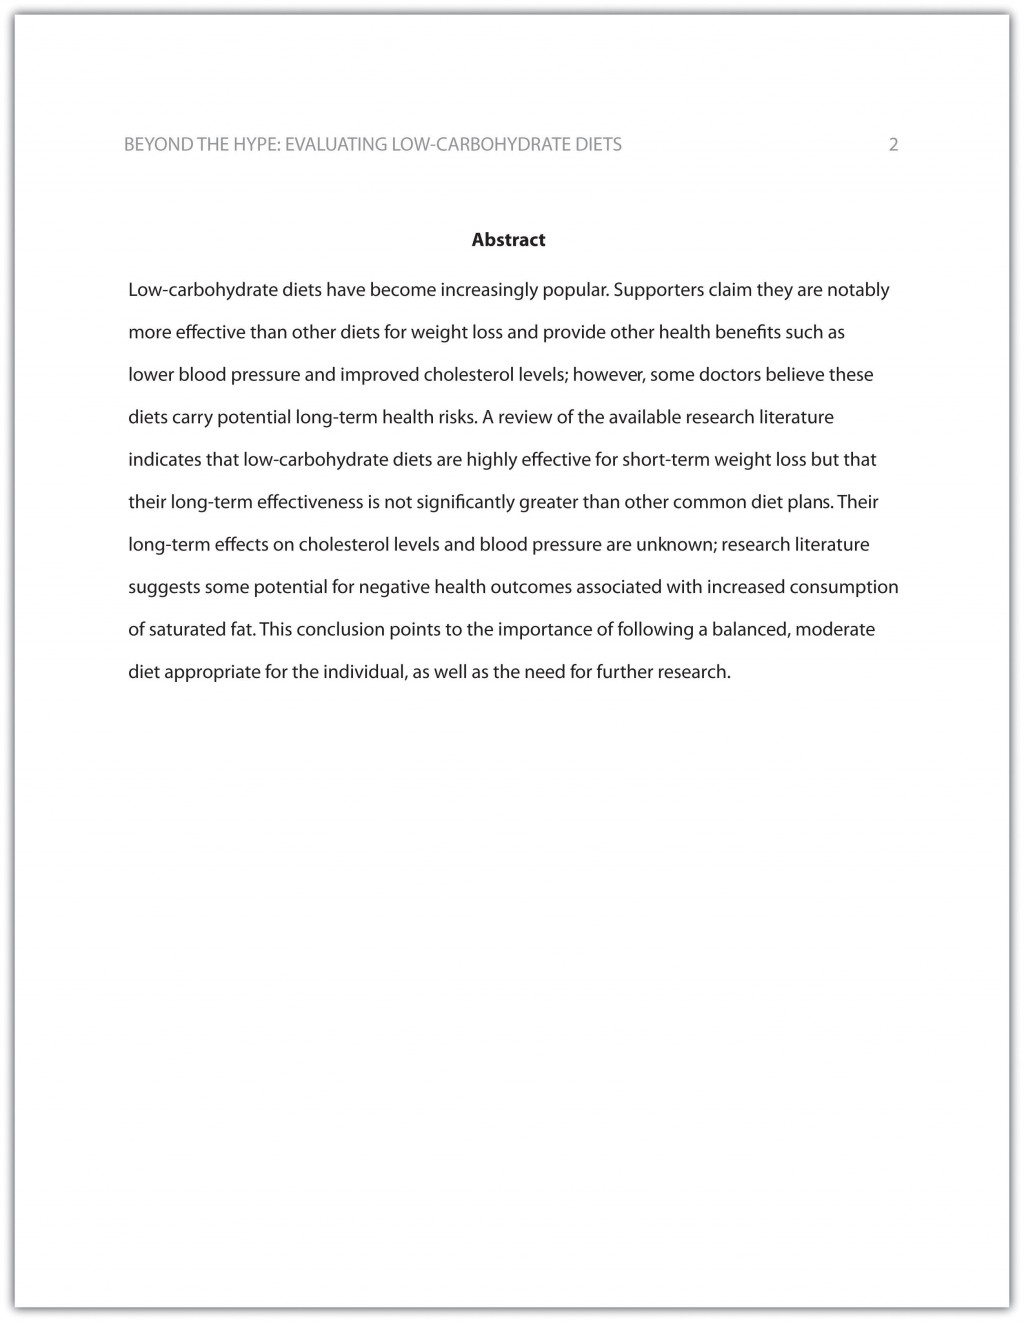 002 Abstract In Research Paper Apa Rare For Style Without Large